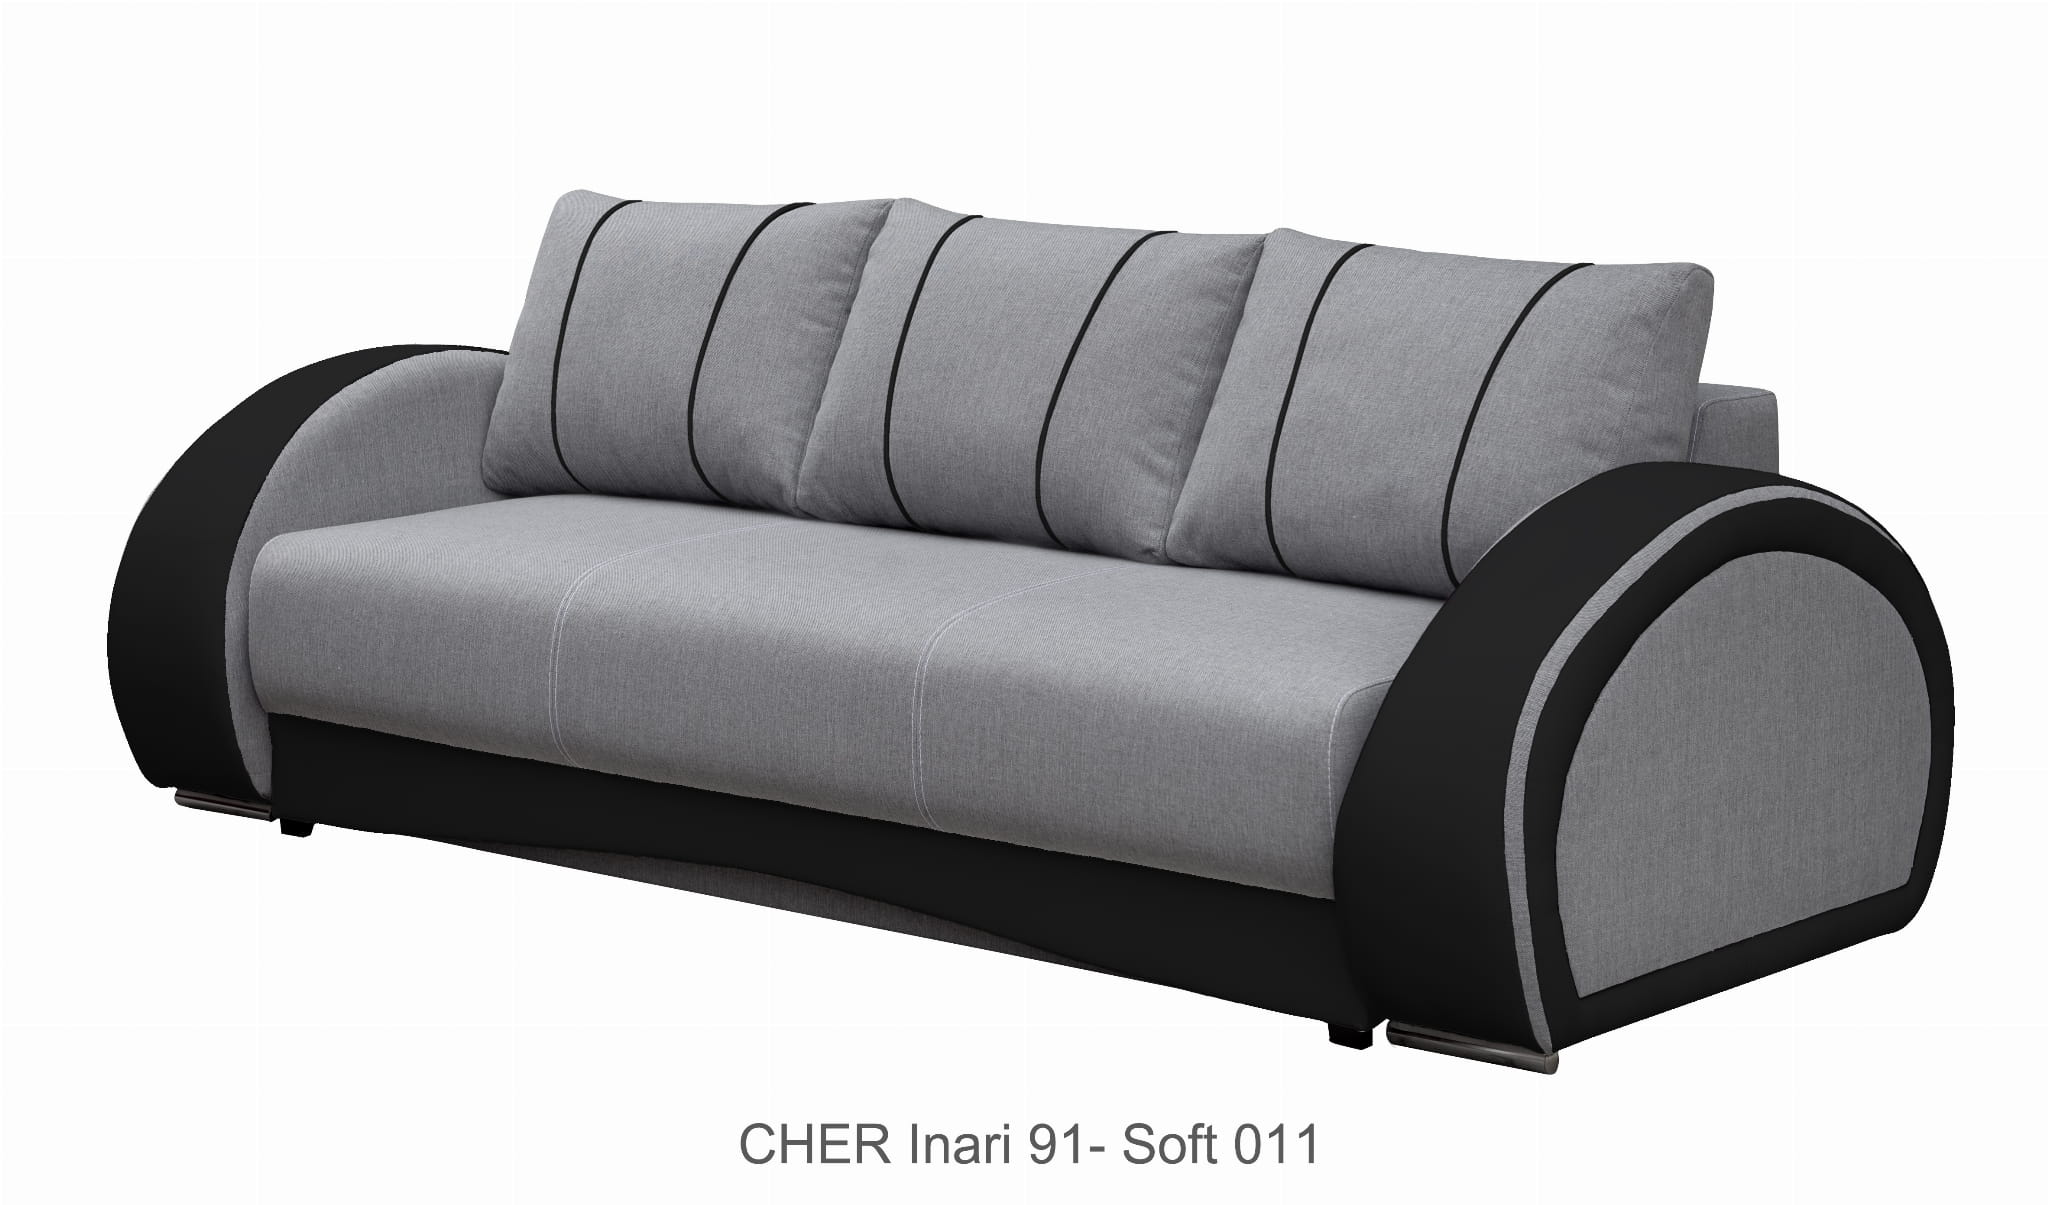 sofa schlafsofa harriet mit schlaffunktion bettkasten schlafcouch bettsofa top ebay. Black Bedroom Furniture Sets. Home Design Ideas